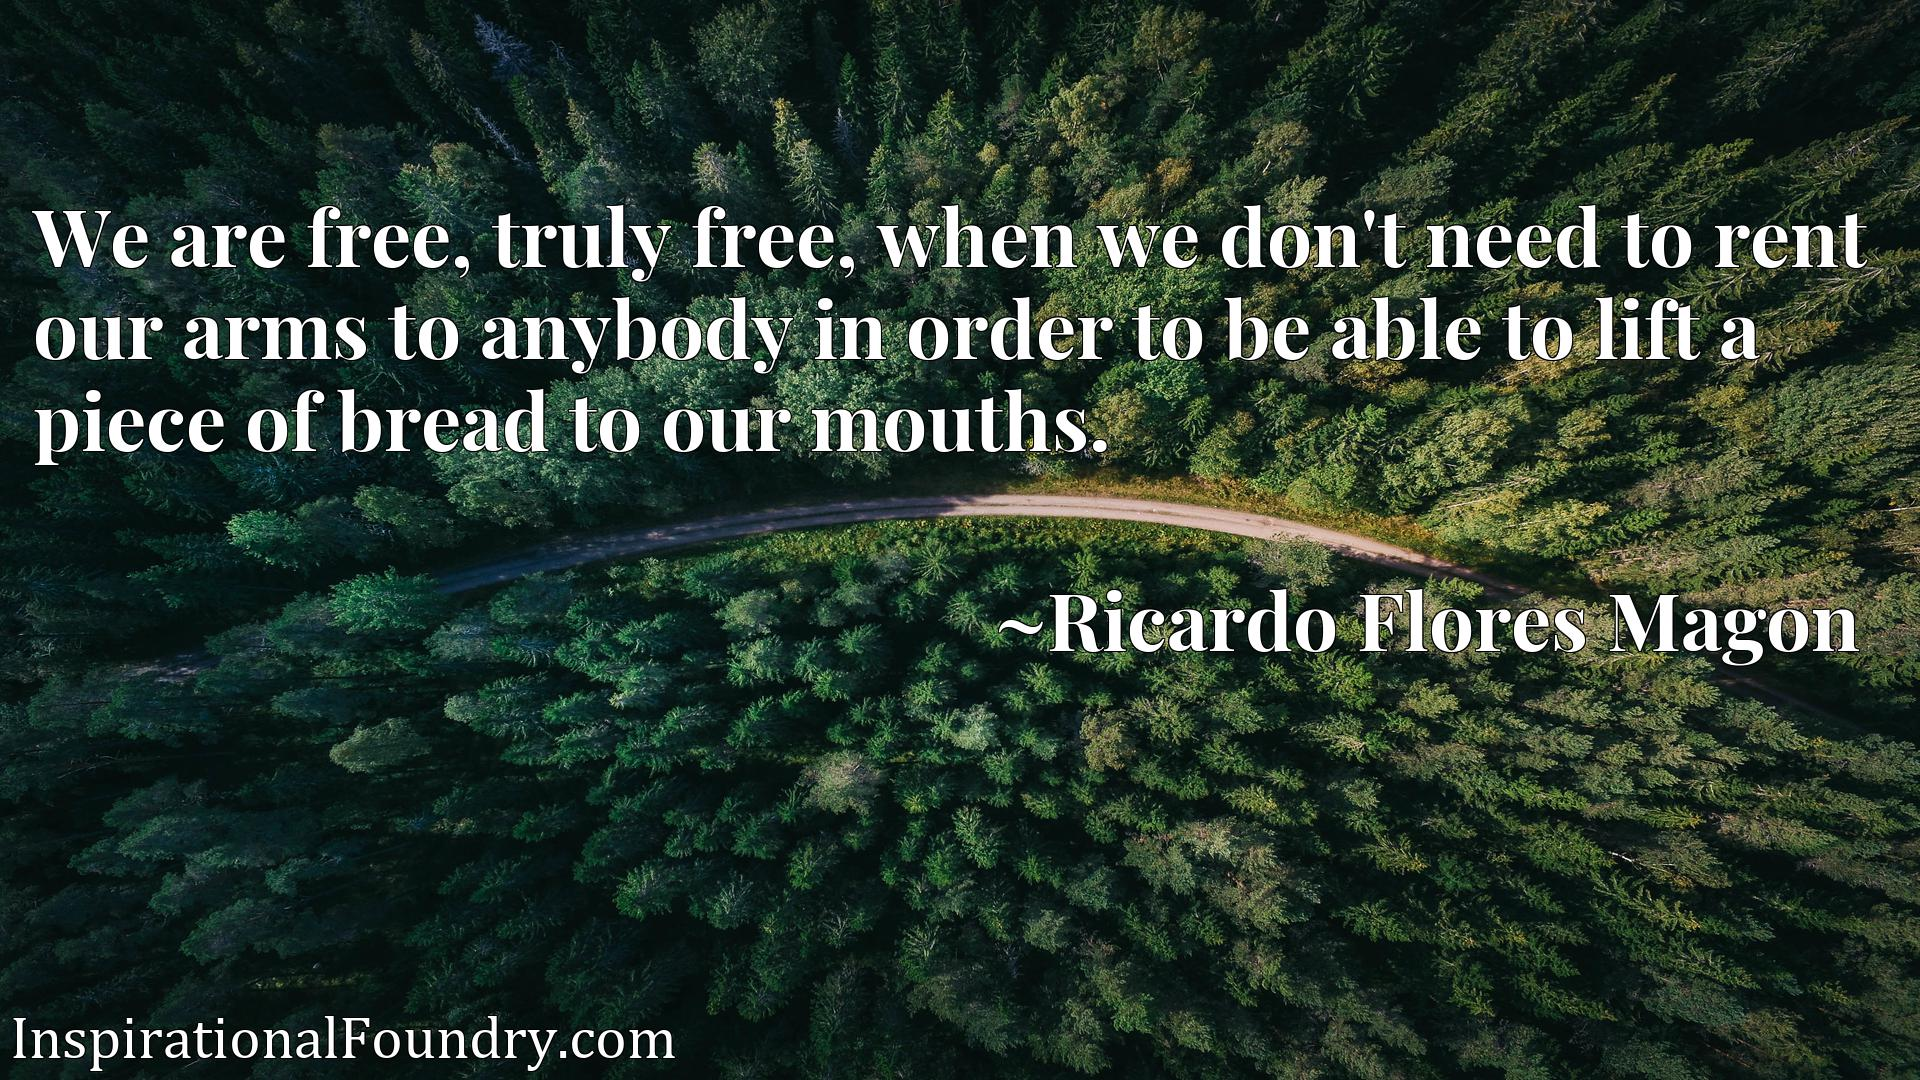 We are free, truly free, when we don't need to rent our arms to anybody in order to be able to lift a piece of bread to our mouths.